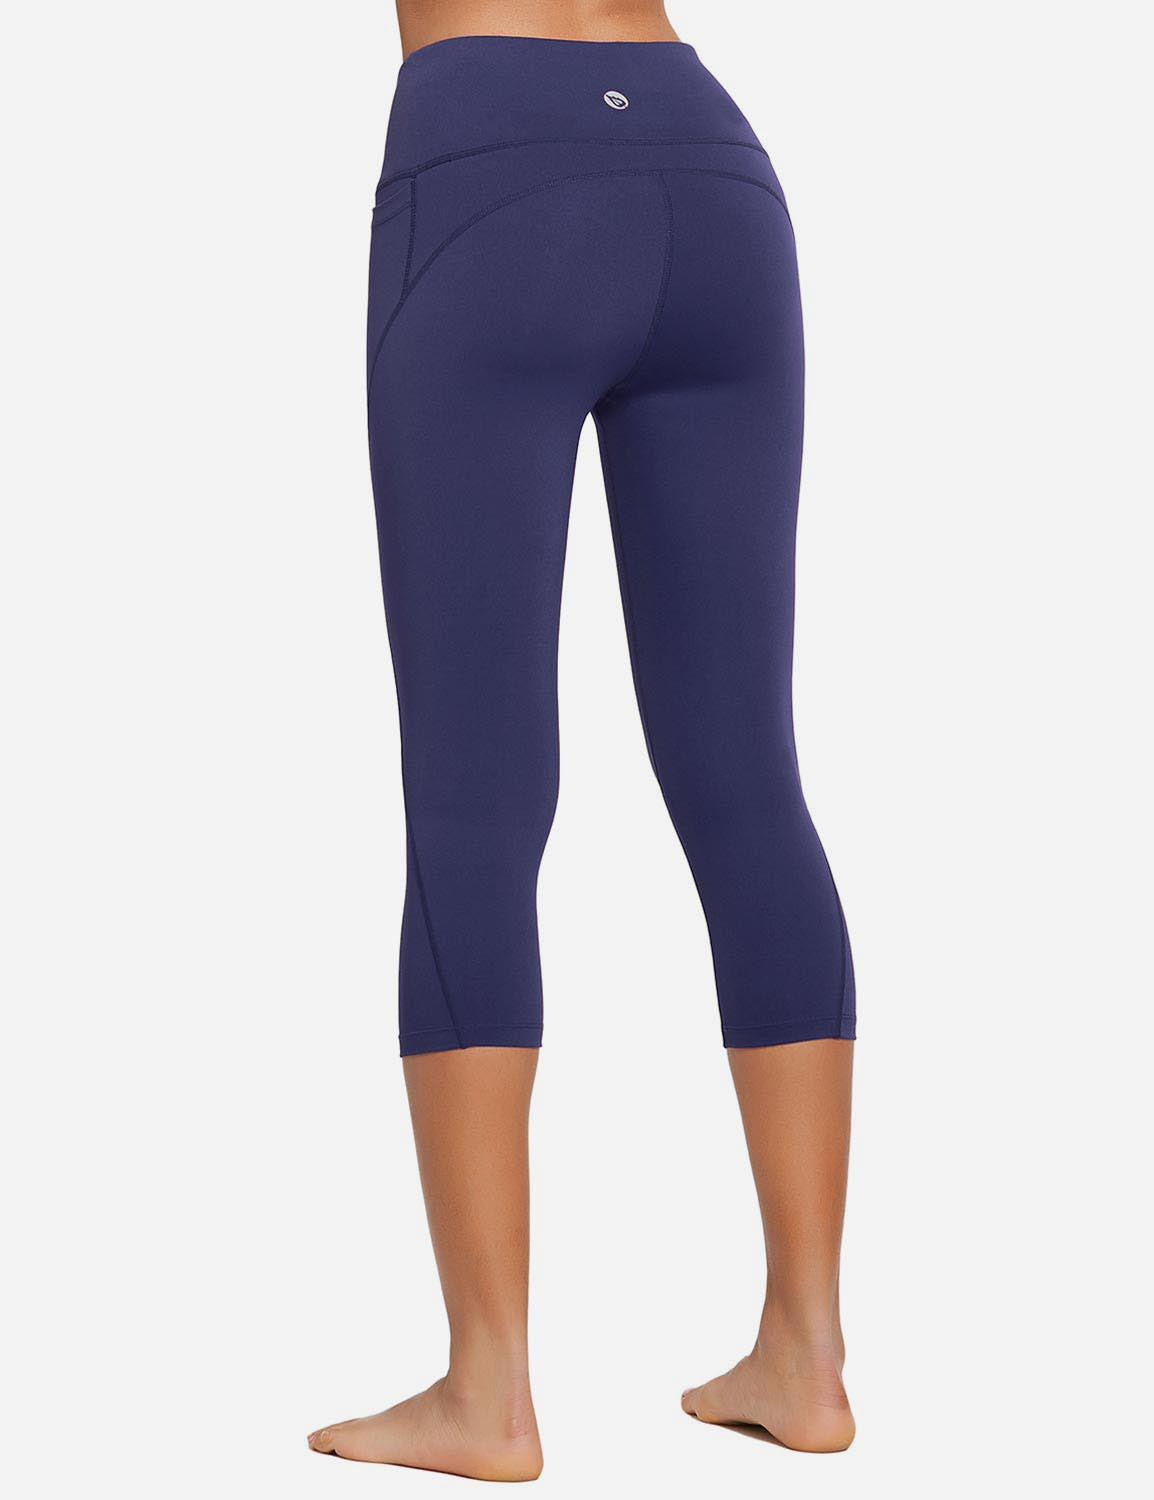 Baleaf Womens High Rise Bottom Contour Pocketed Capris Dark Navy Back